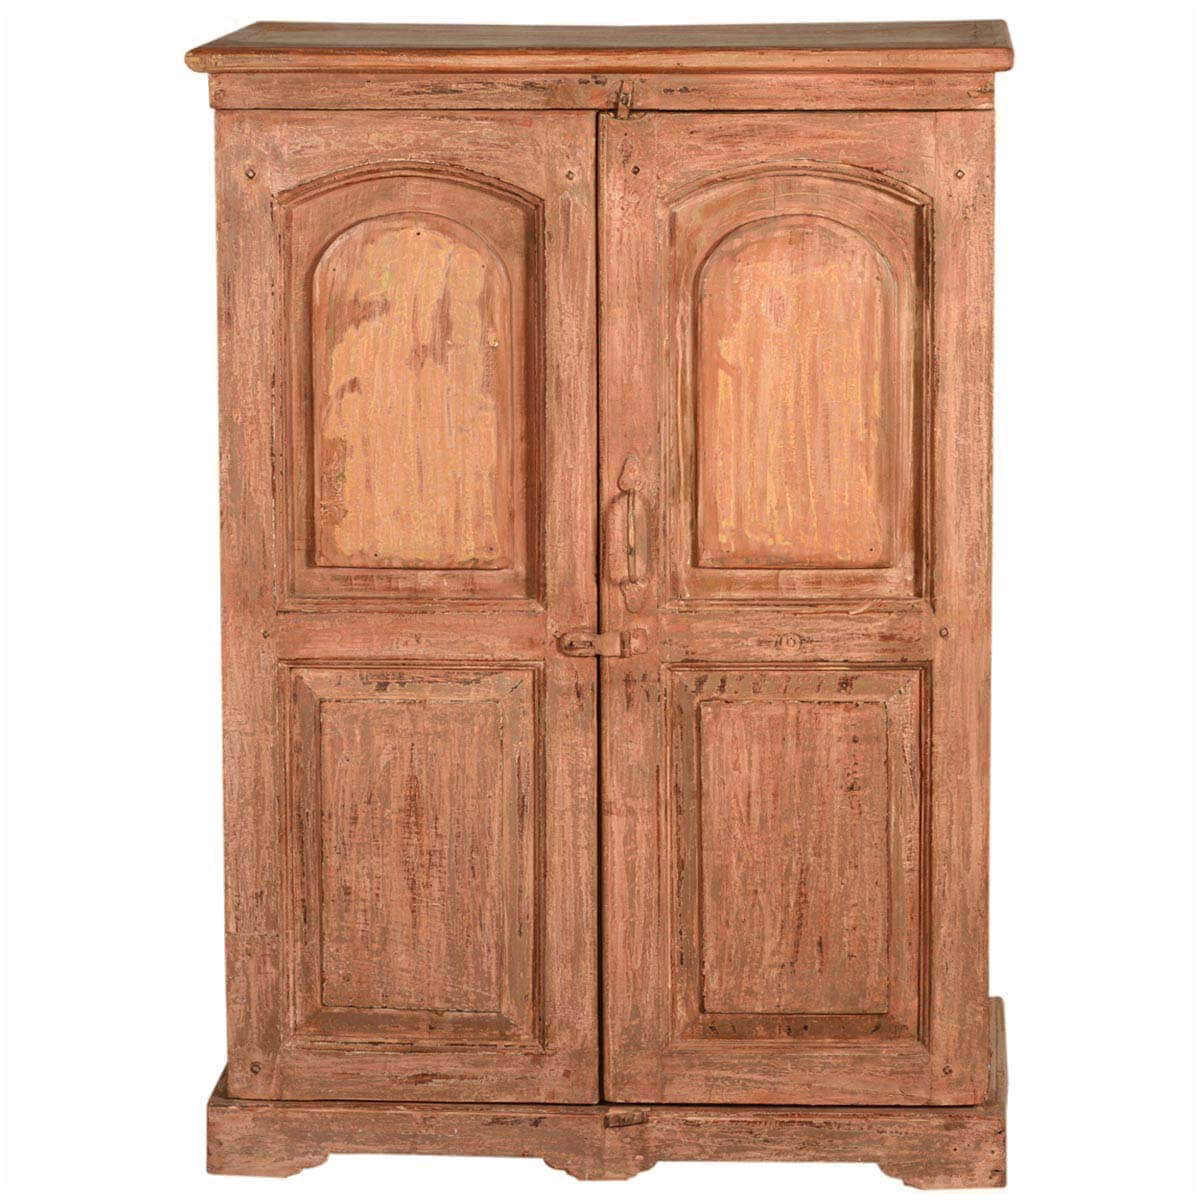 New orleans rustic reclaimed wood storage cabinet armoire Newwood cupboards